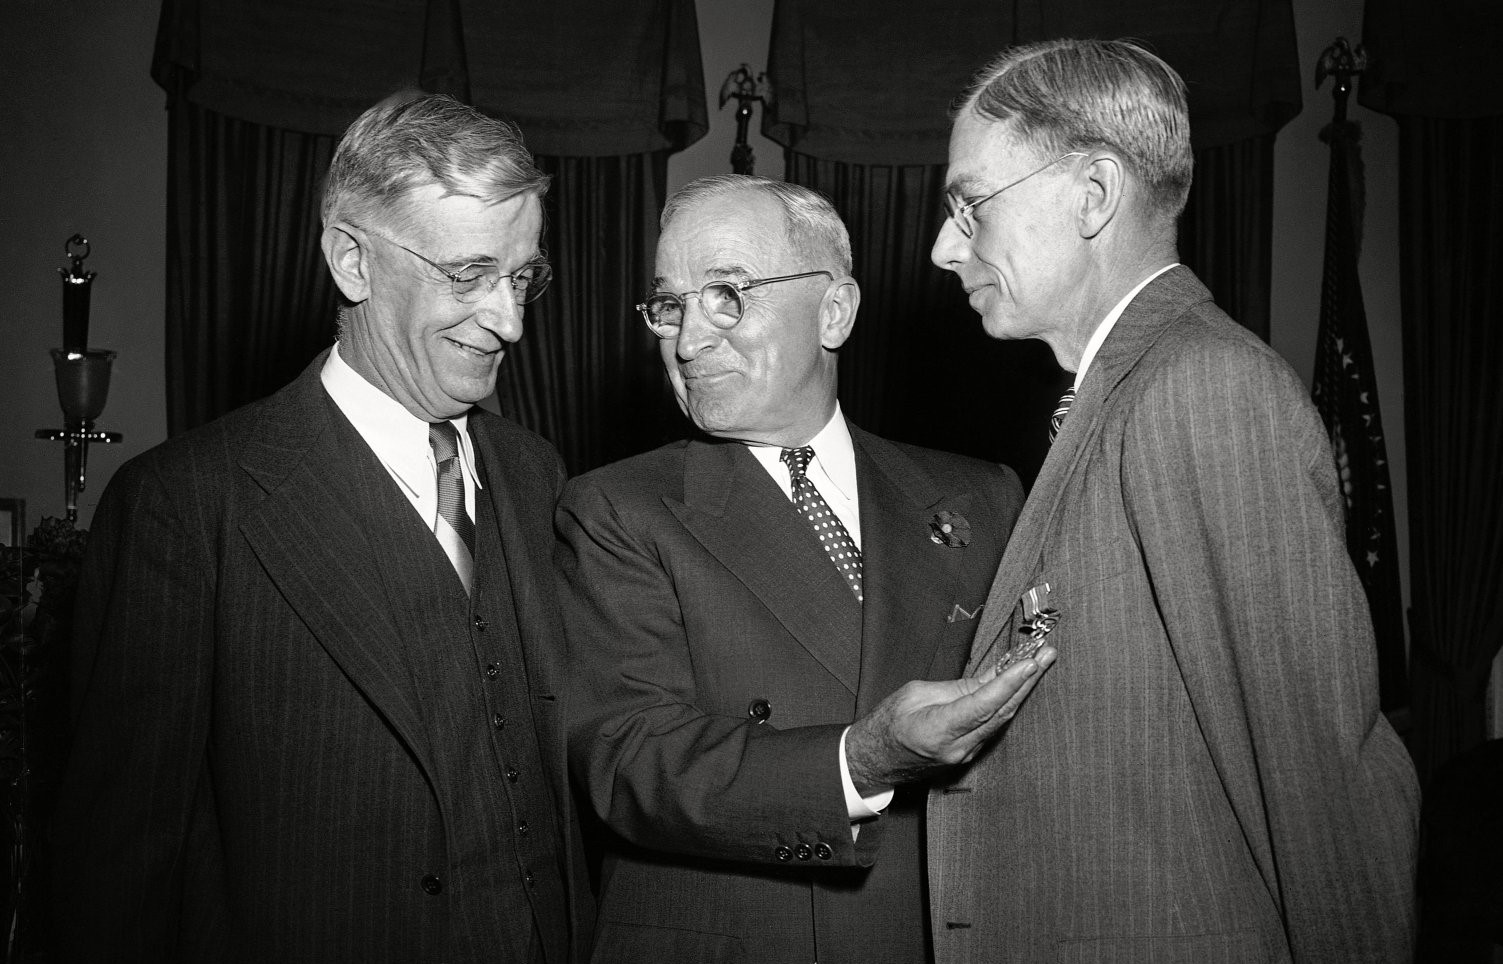 Harry Truman With Scientists, Washington, USA